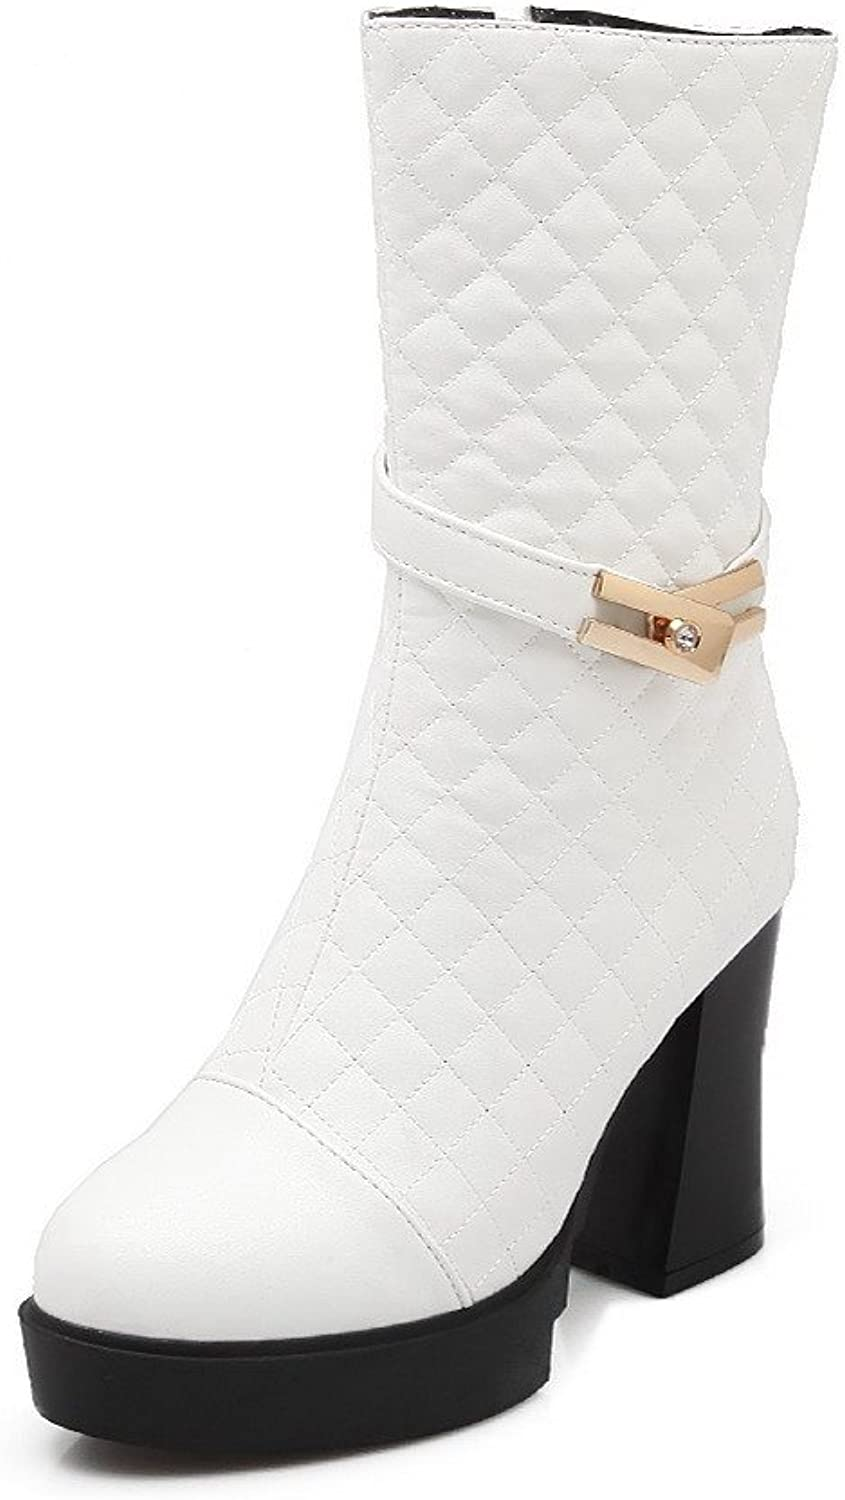 WeenFashion Women's PU High-heels Round-toe Boots with Metal Ornament and Glass Diamond Ornament